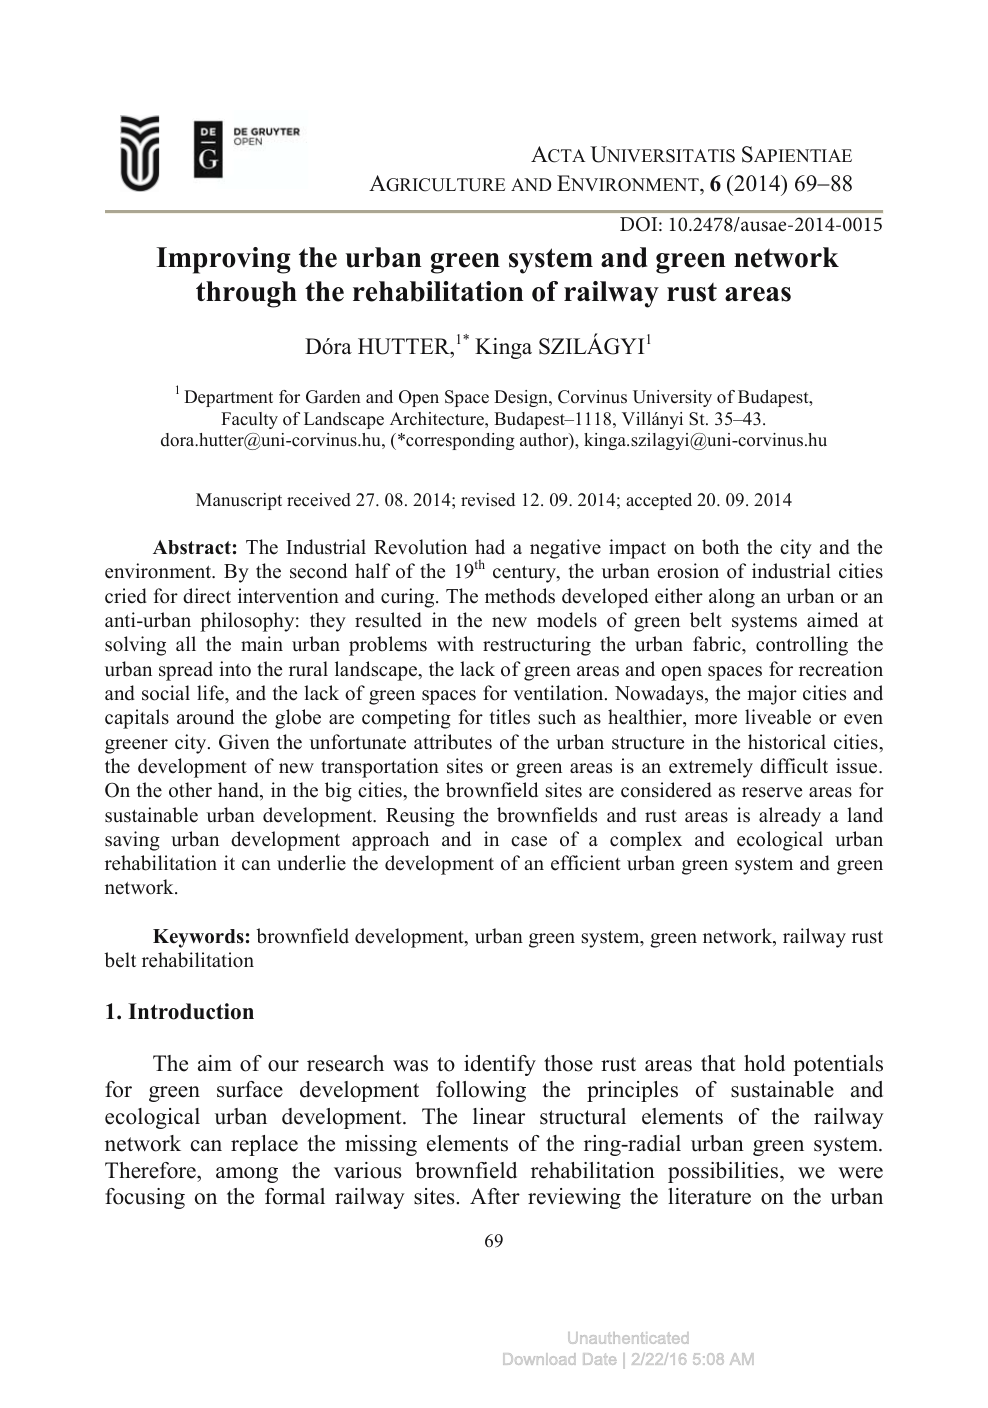 Improving the urban green system and green network through